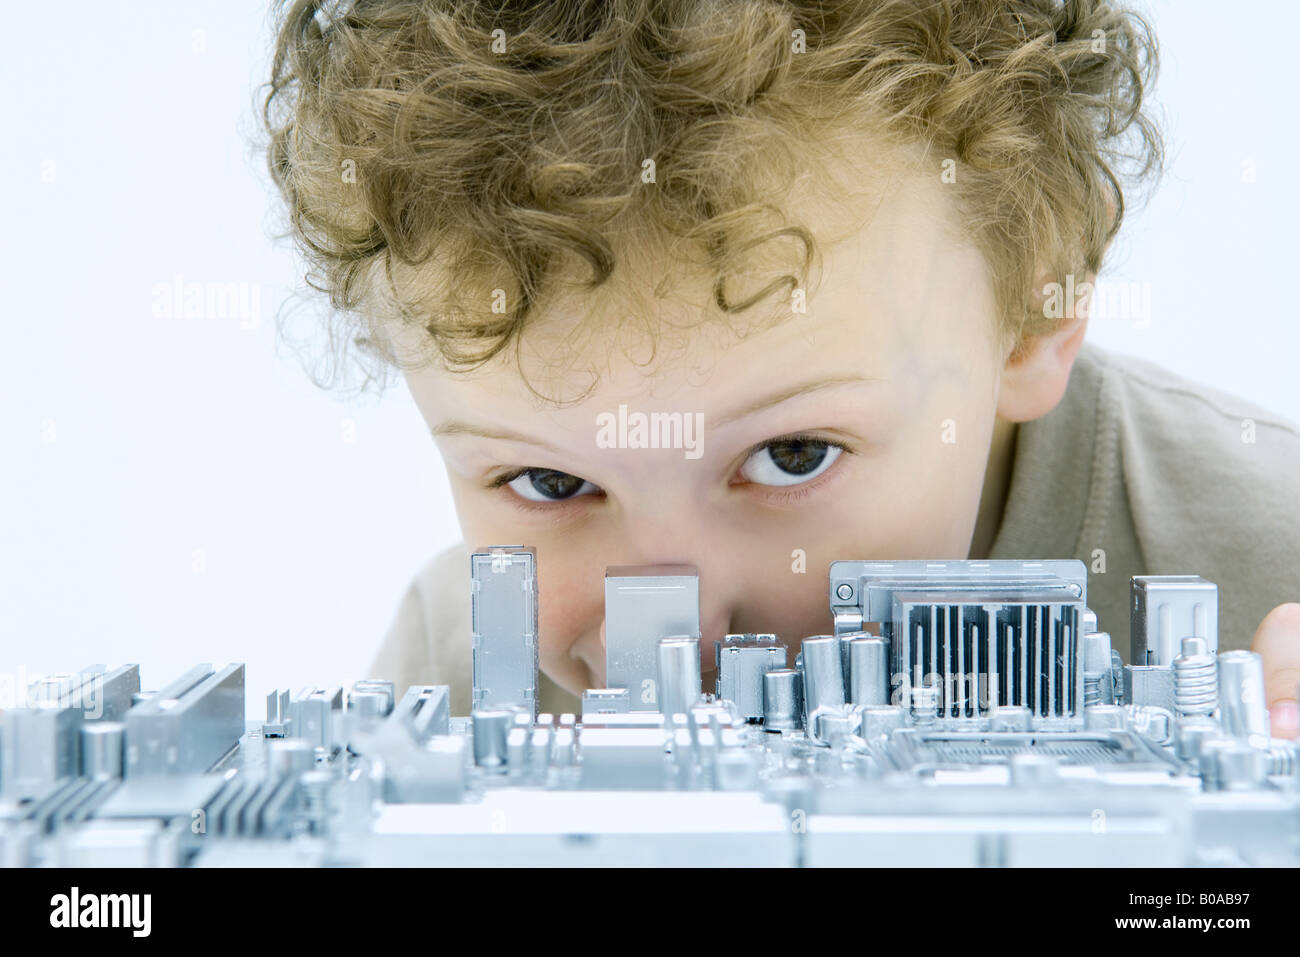 Little boy looking over circuit board at camera, close-up - Stock Image